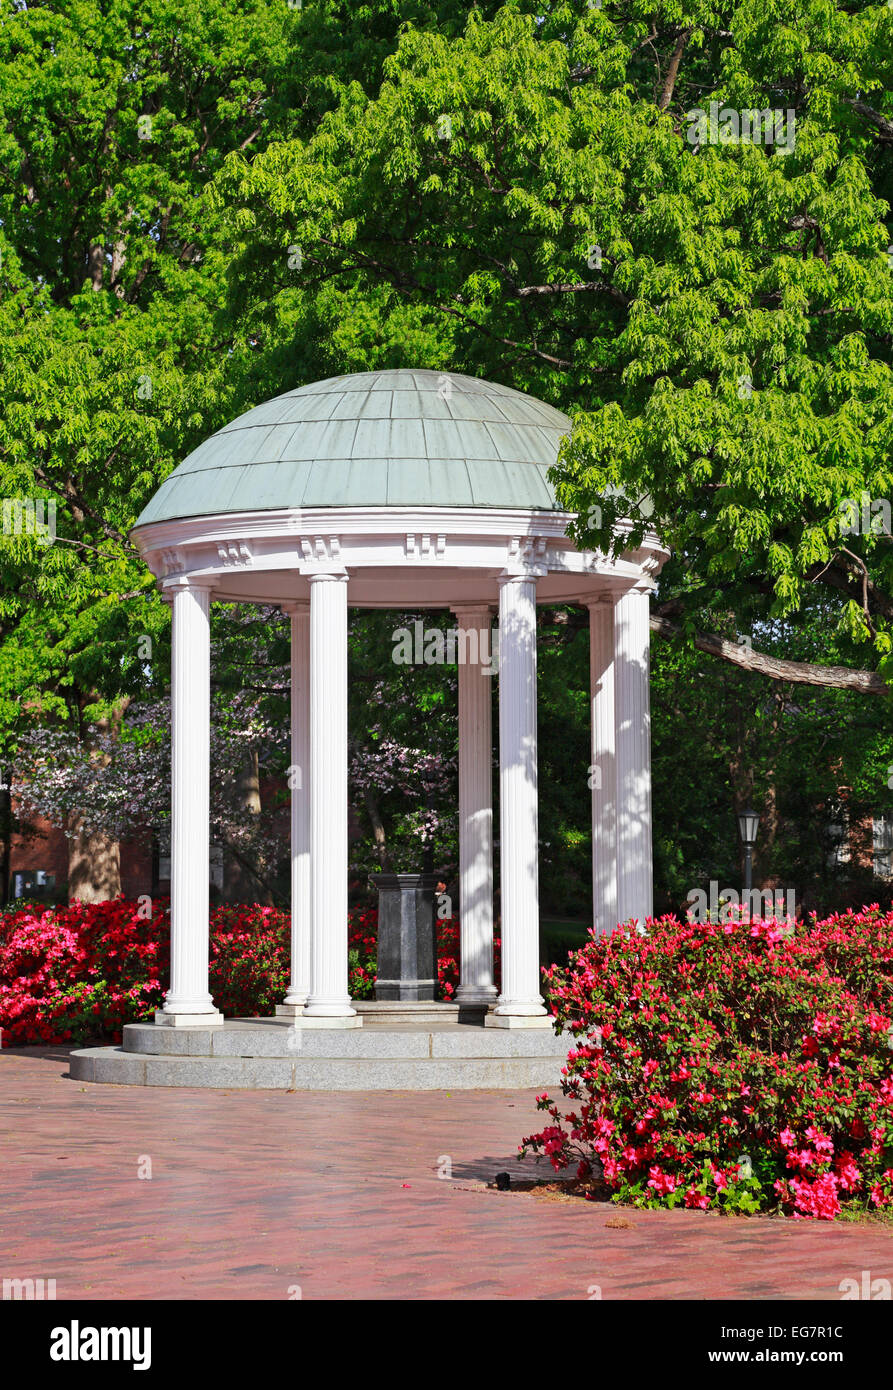 The old well at University of North Carolina at Chapel Hill (UNC), with pink Azaleas blooming. - Stock Image